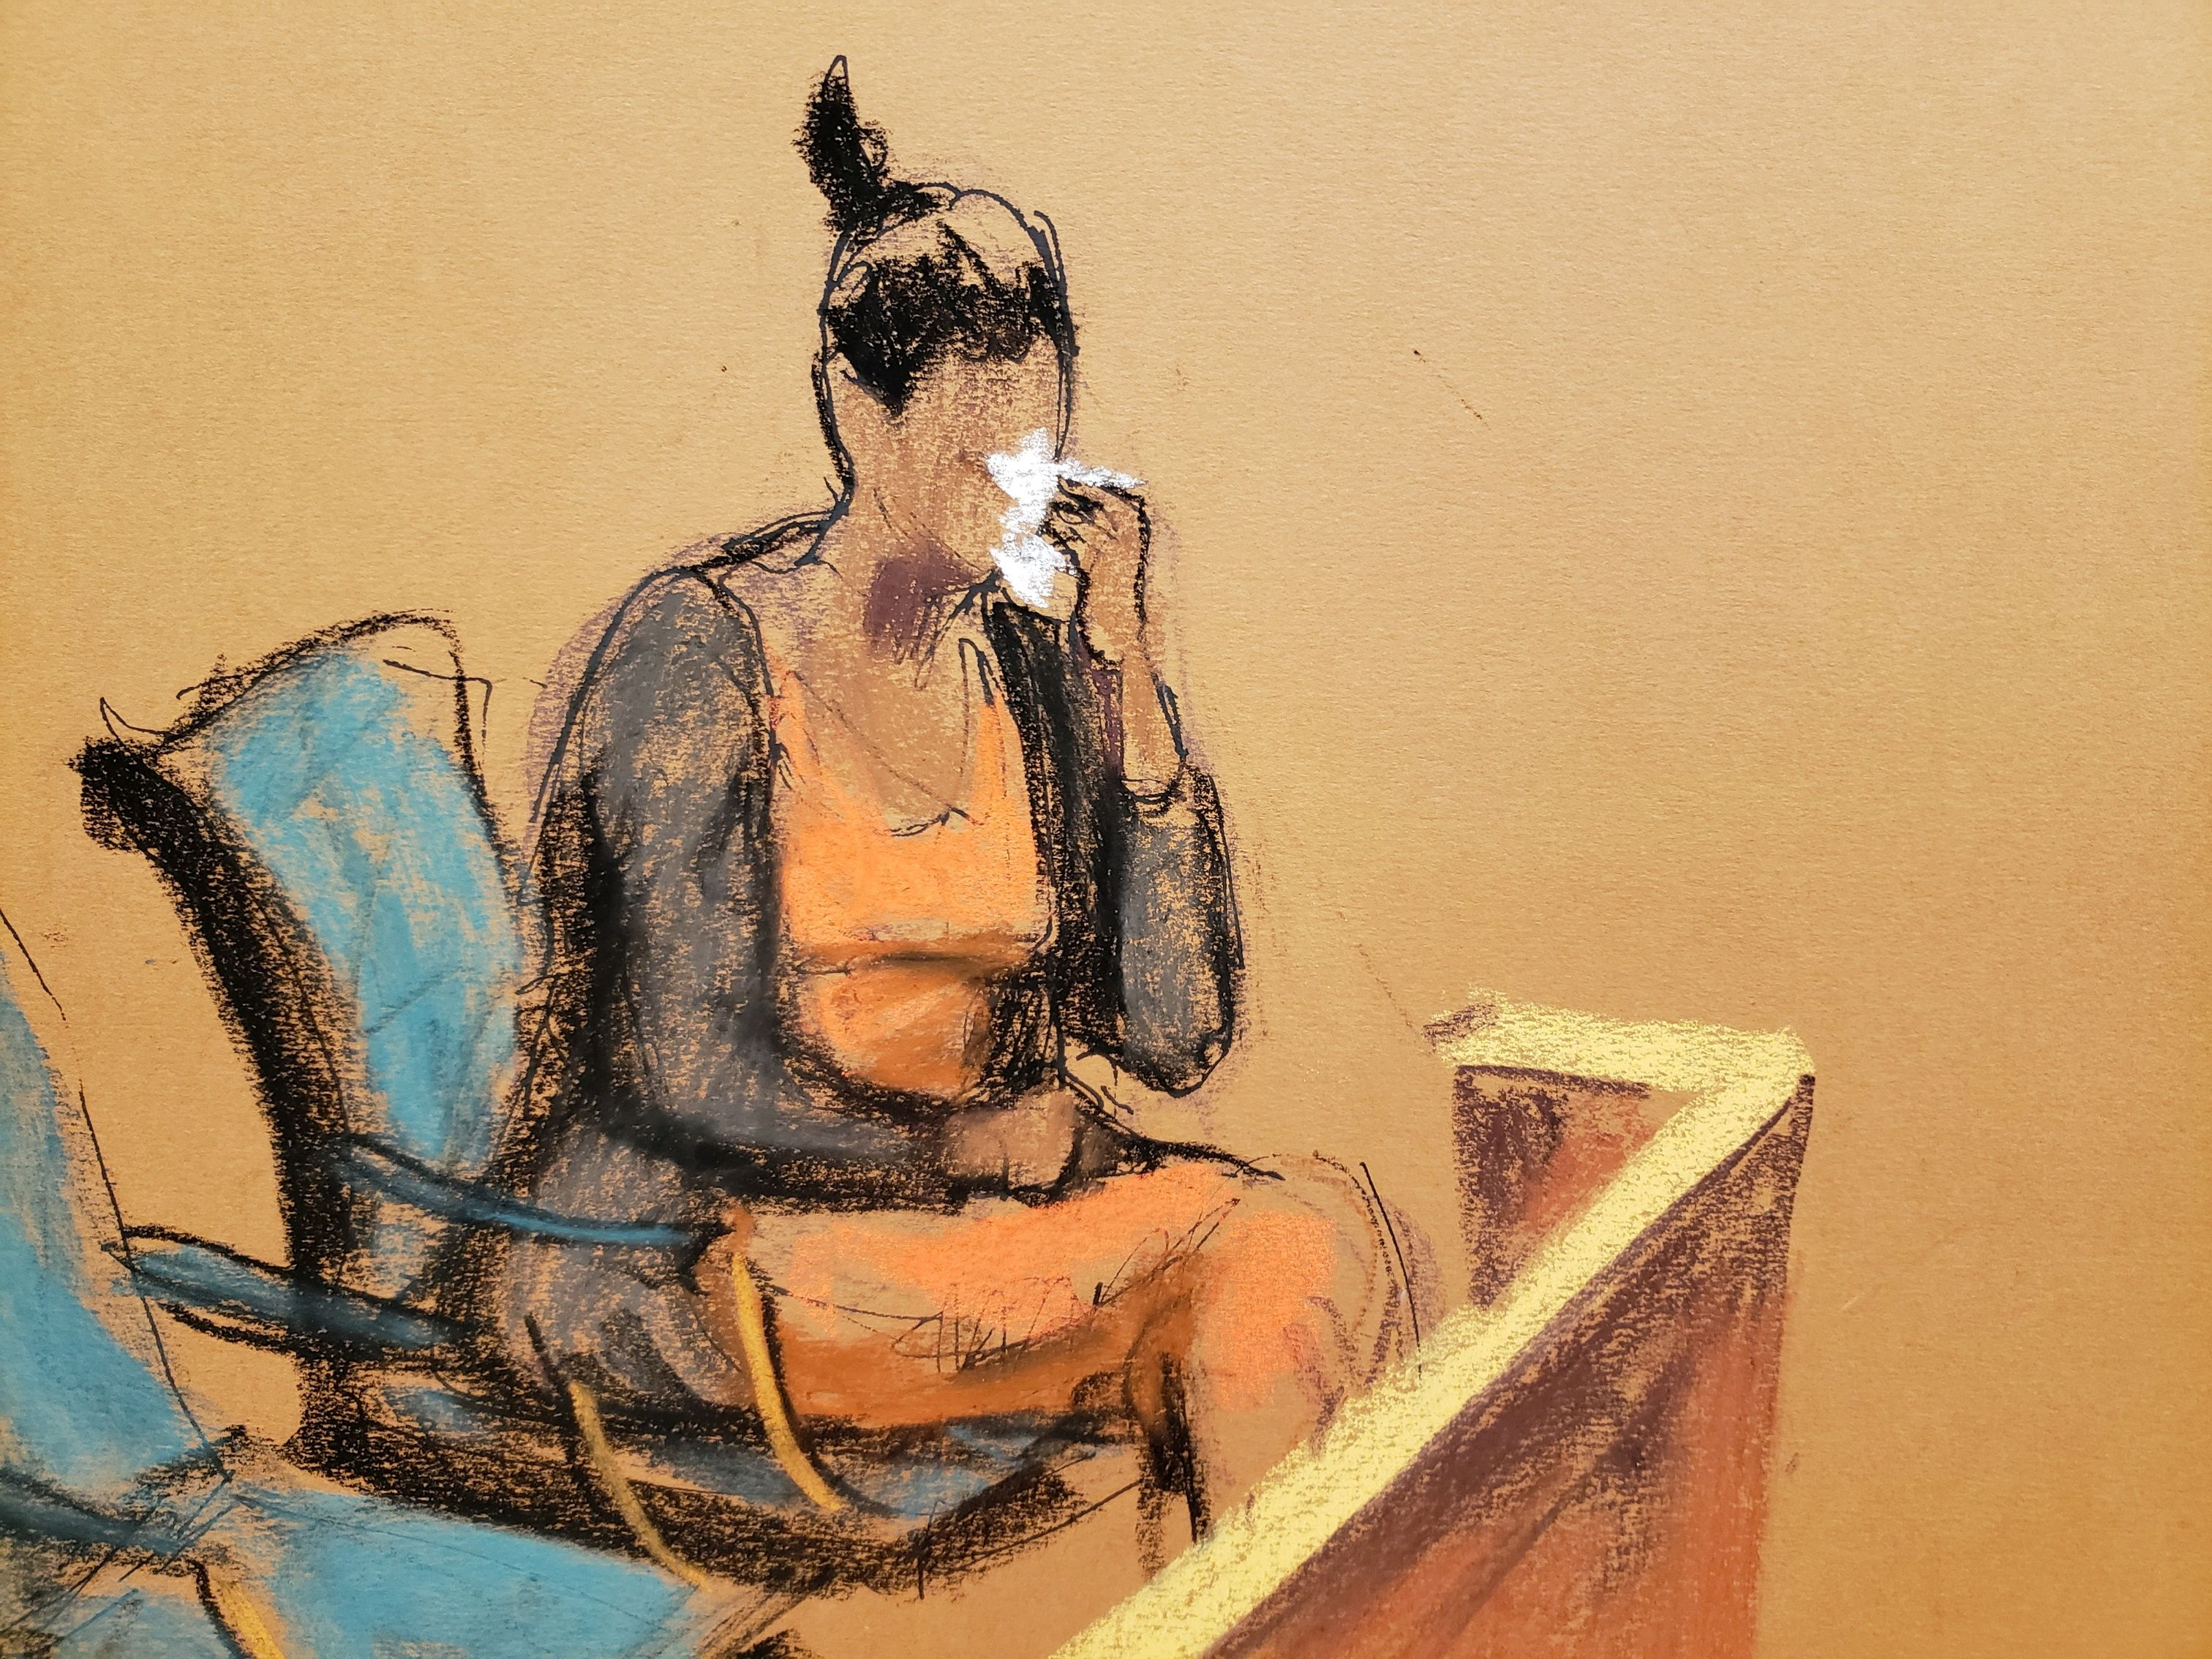 Jane Doe #5 weeps during R. Kelly's sex abuse trial at Brooklyn's Federal District Court in New York, U.S., August 25, 2021 in a courtroom sketch. REUTERS/Jane Rosenberg